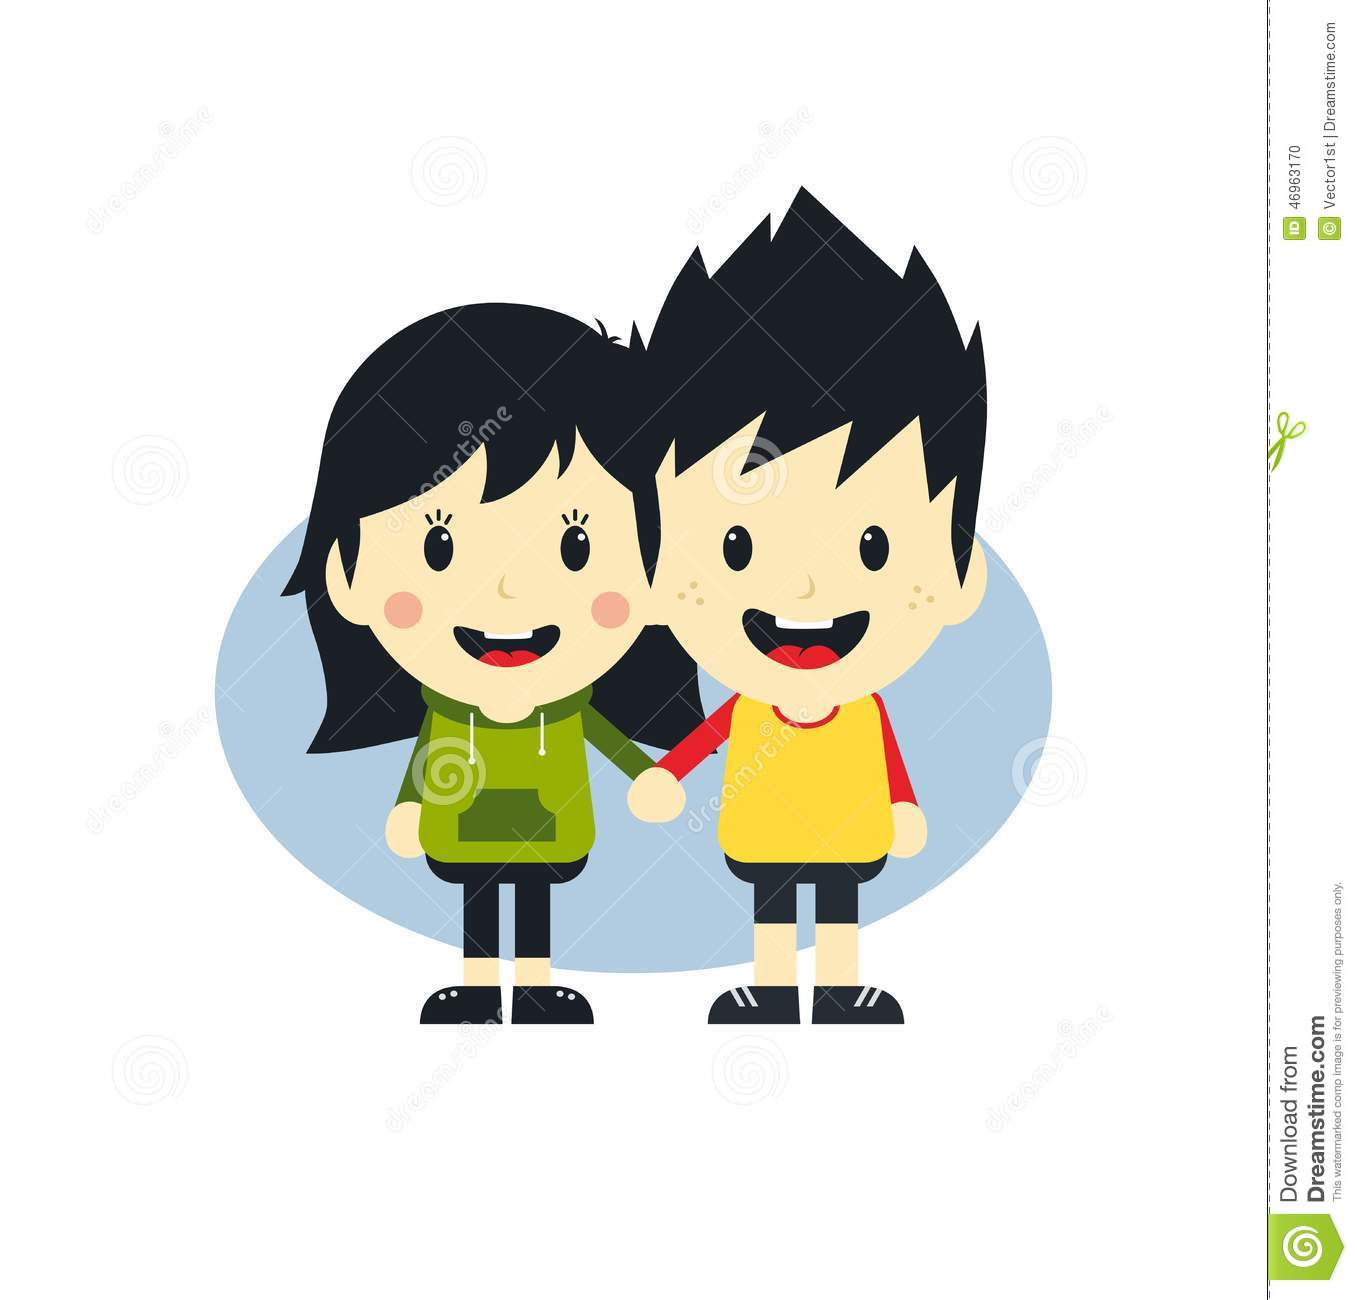 Cartoon Characters Couples : Love couple cartoon character stock vector image